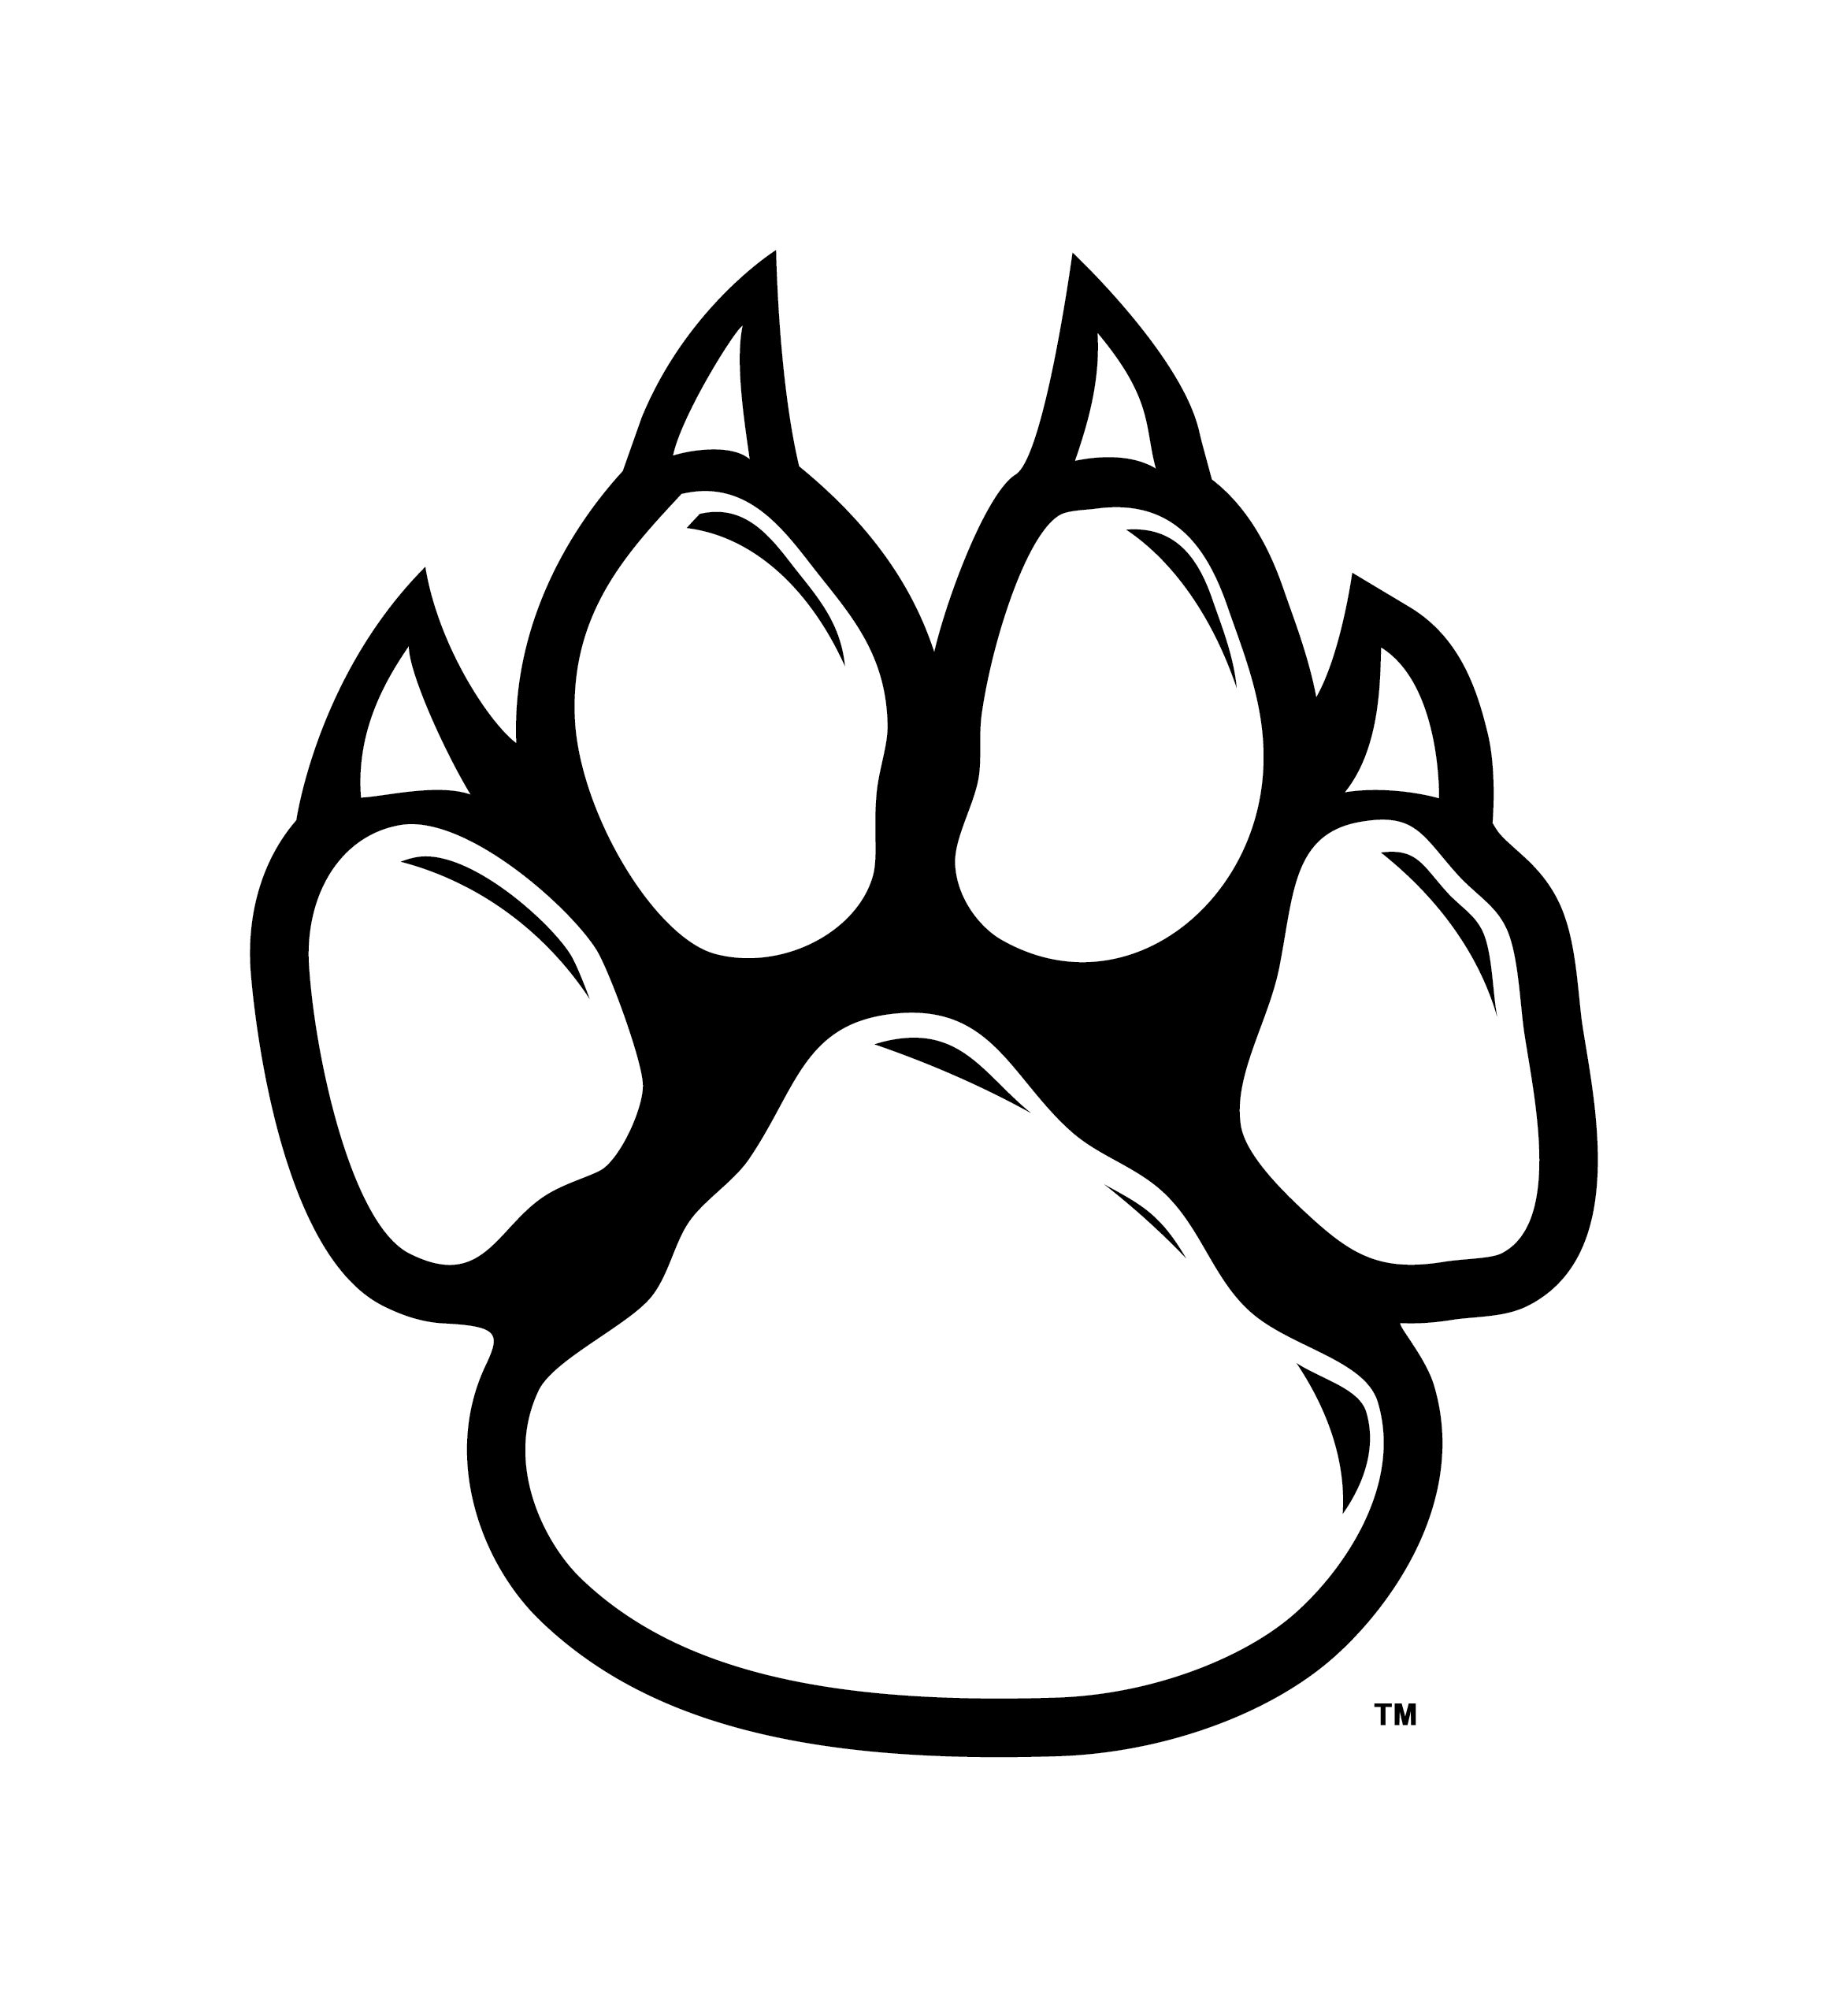 clip royalty free download Paw prints free download. Wildcat clipart